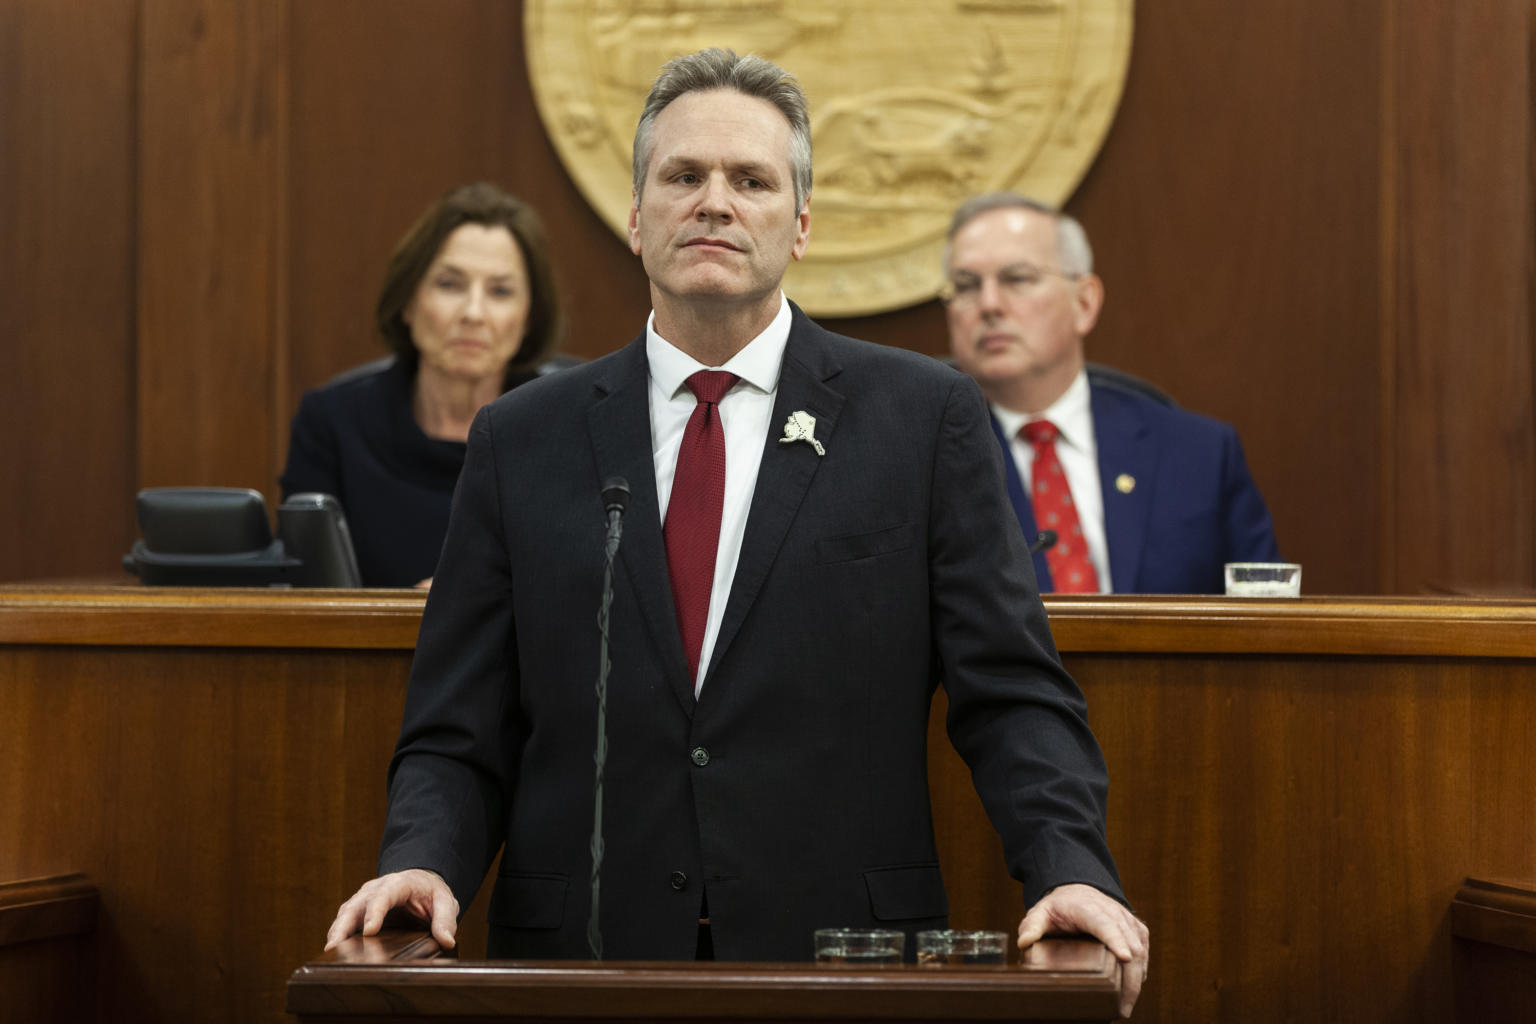 Alaska Supreme Court says judge was wrong to stall recall of Gov. Dunleavy while appeal plays out - Alaska Public Media